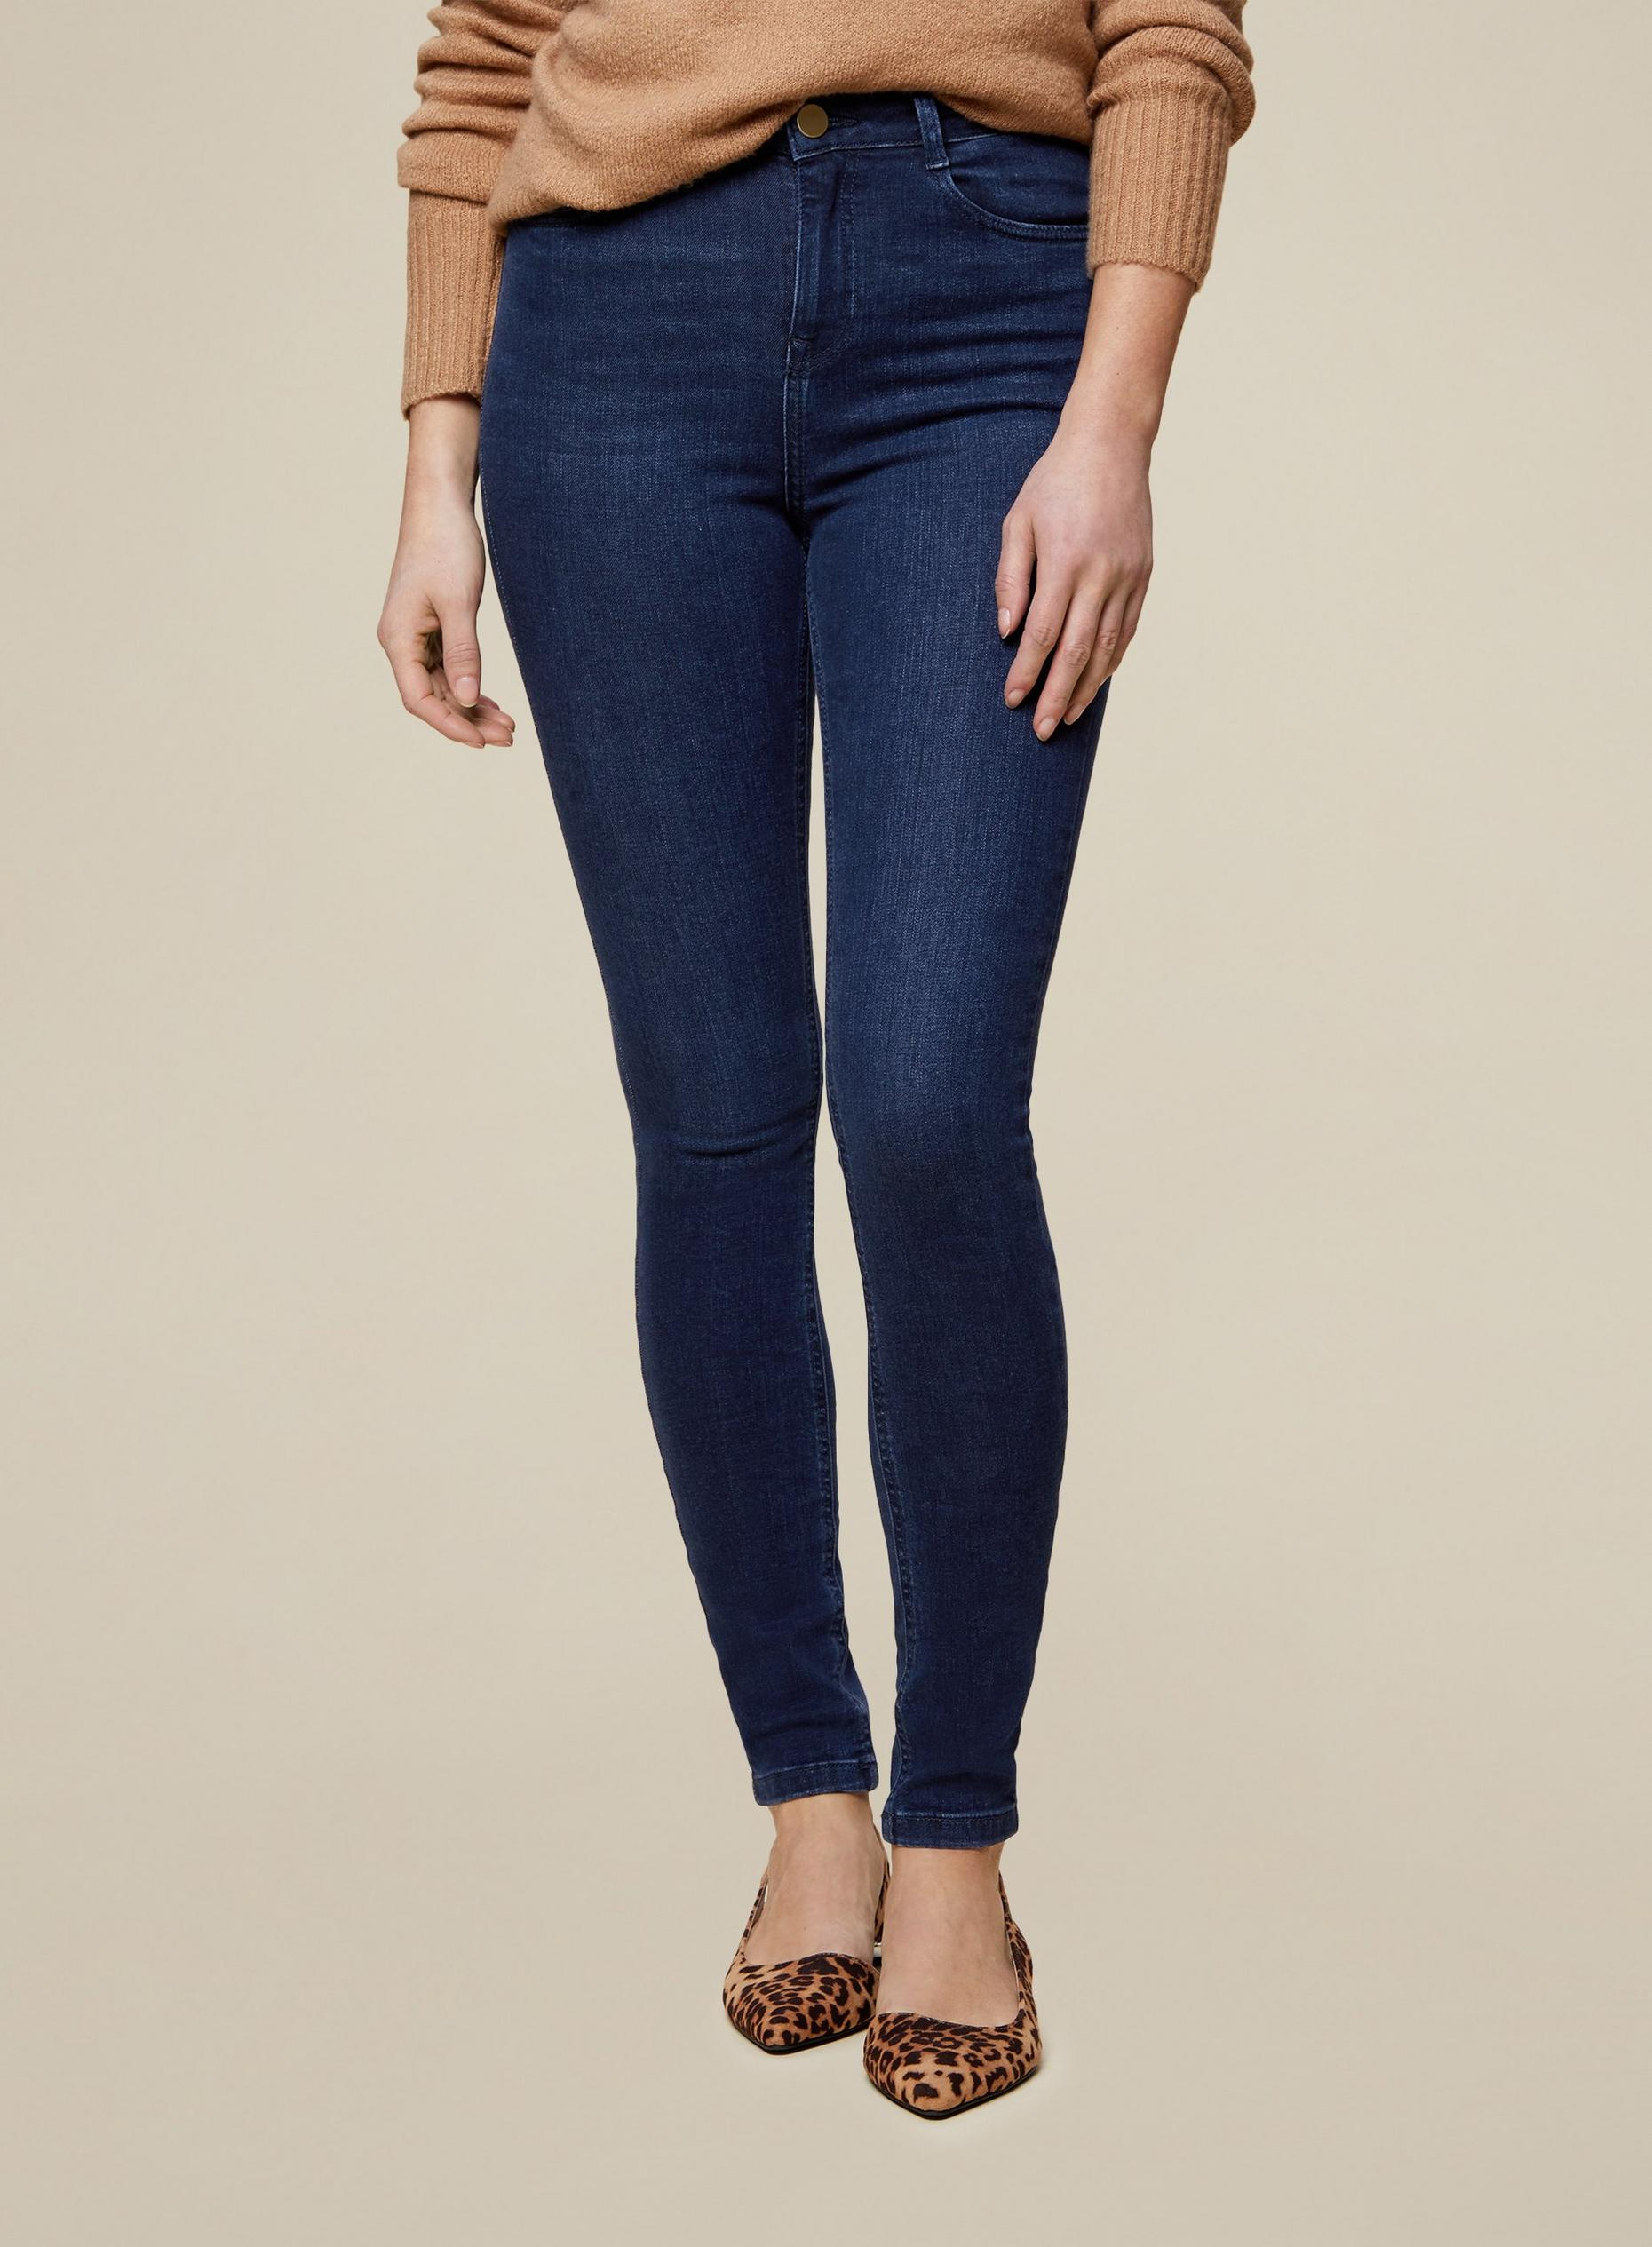 Shape and Lift Long Jeans